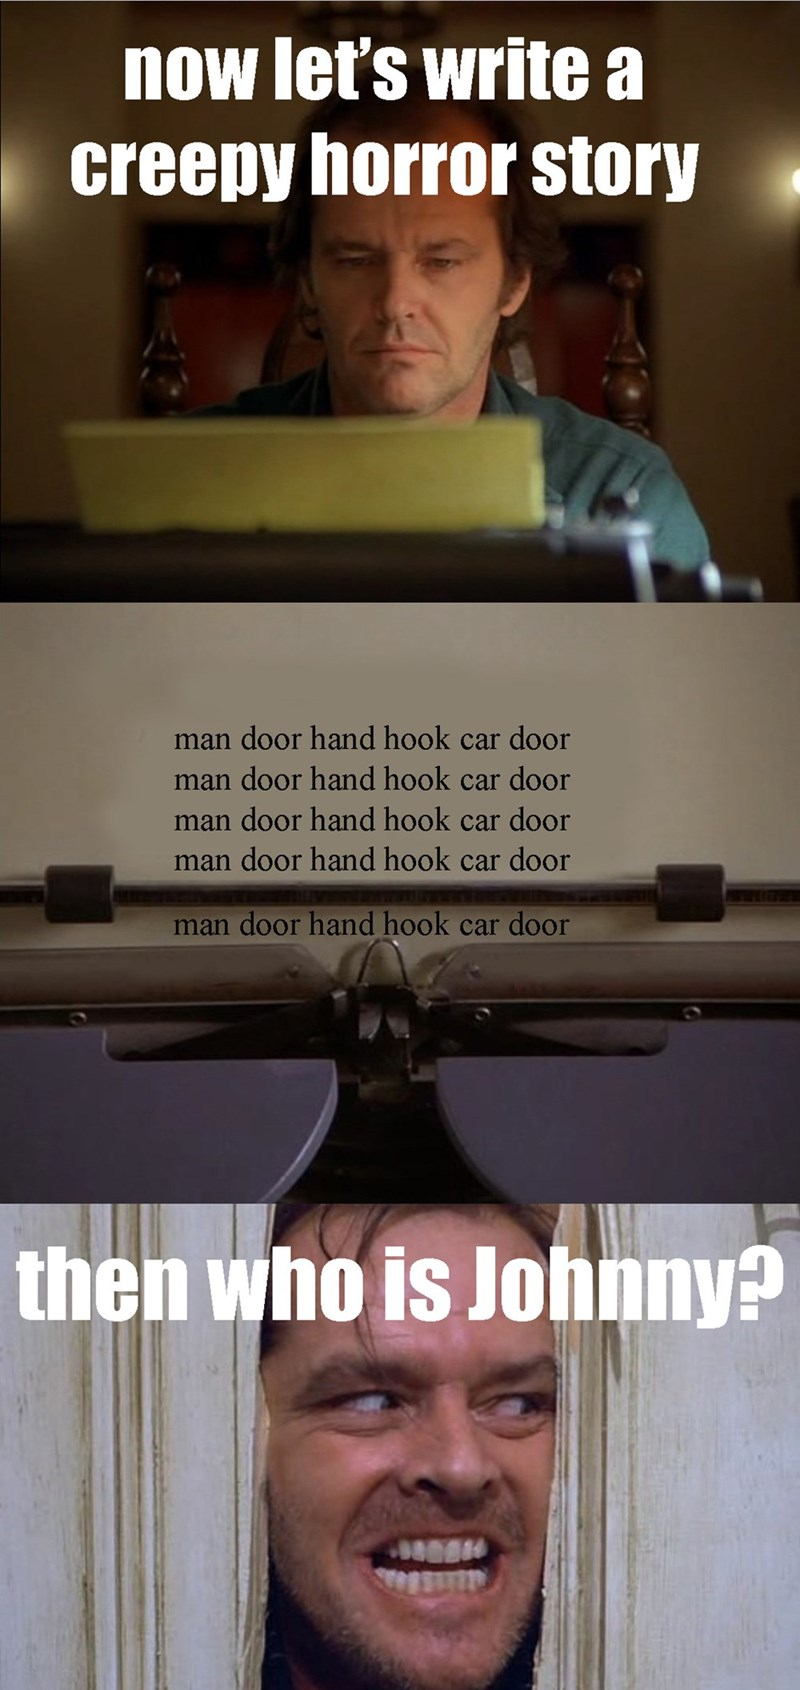 creepy pasta,From the Movies,heres-johnny,horror,man door hand hook car do,The Shinning